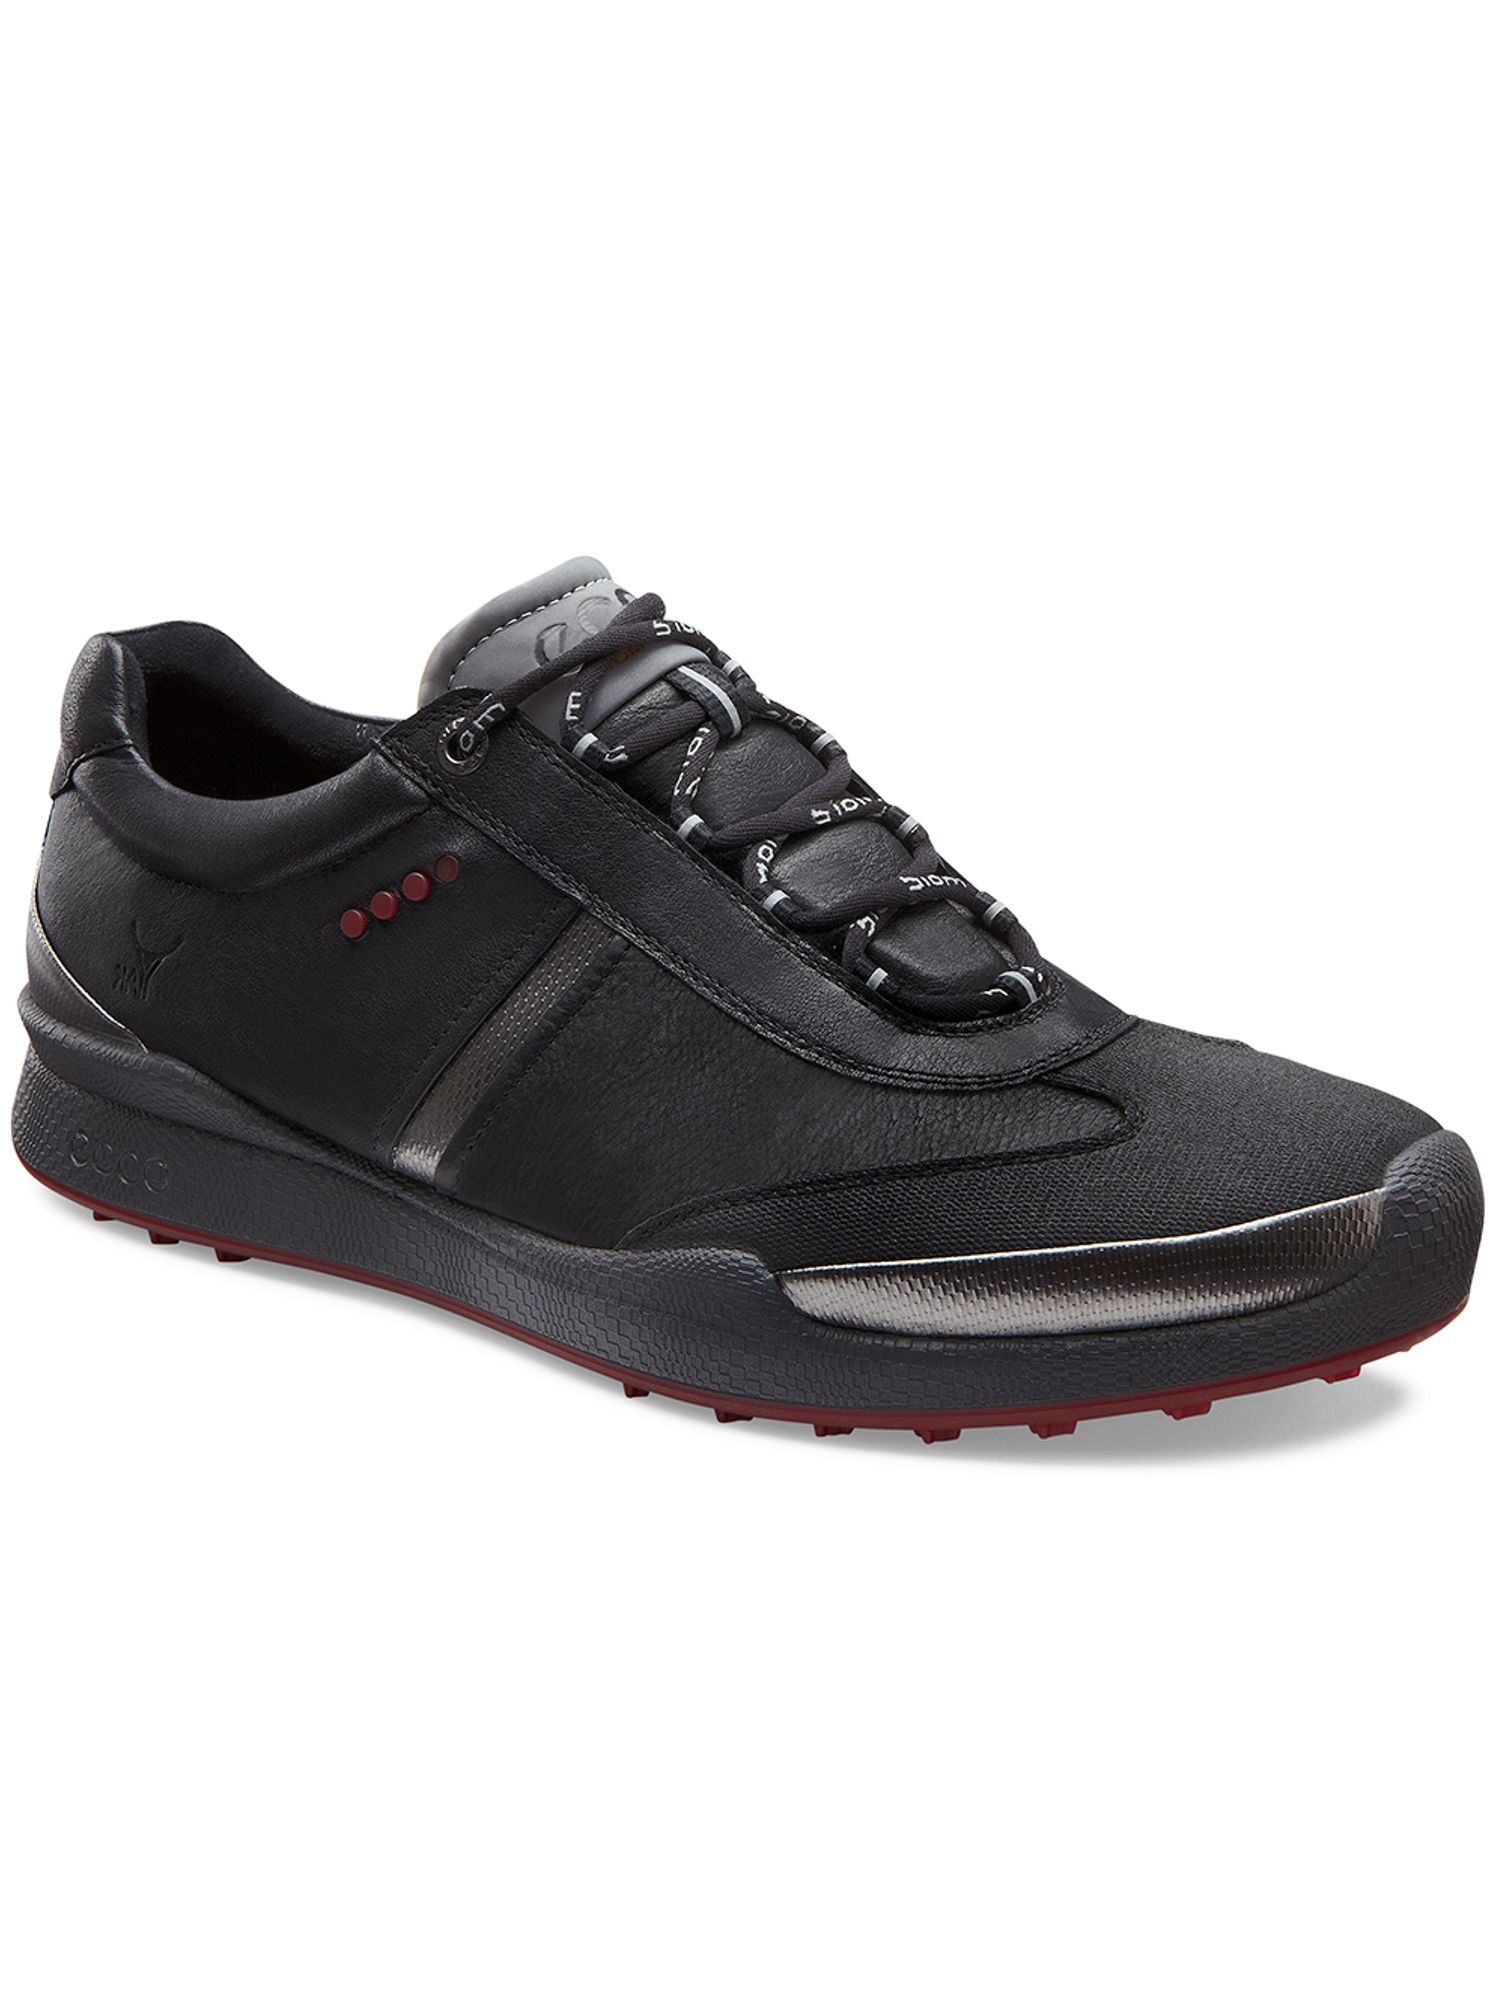 Biom hybrid GTX golf shoes